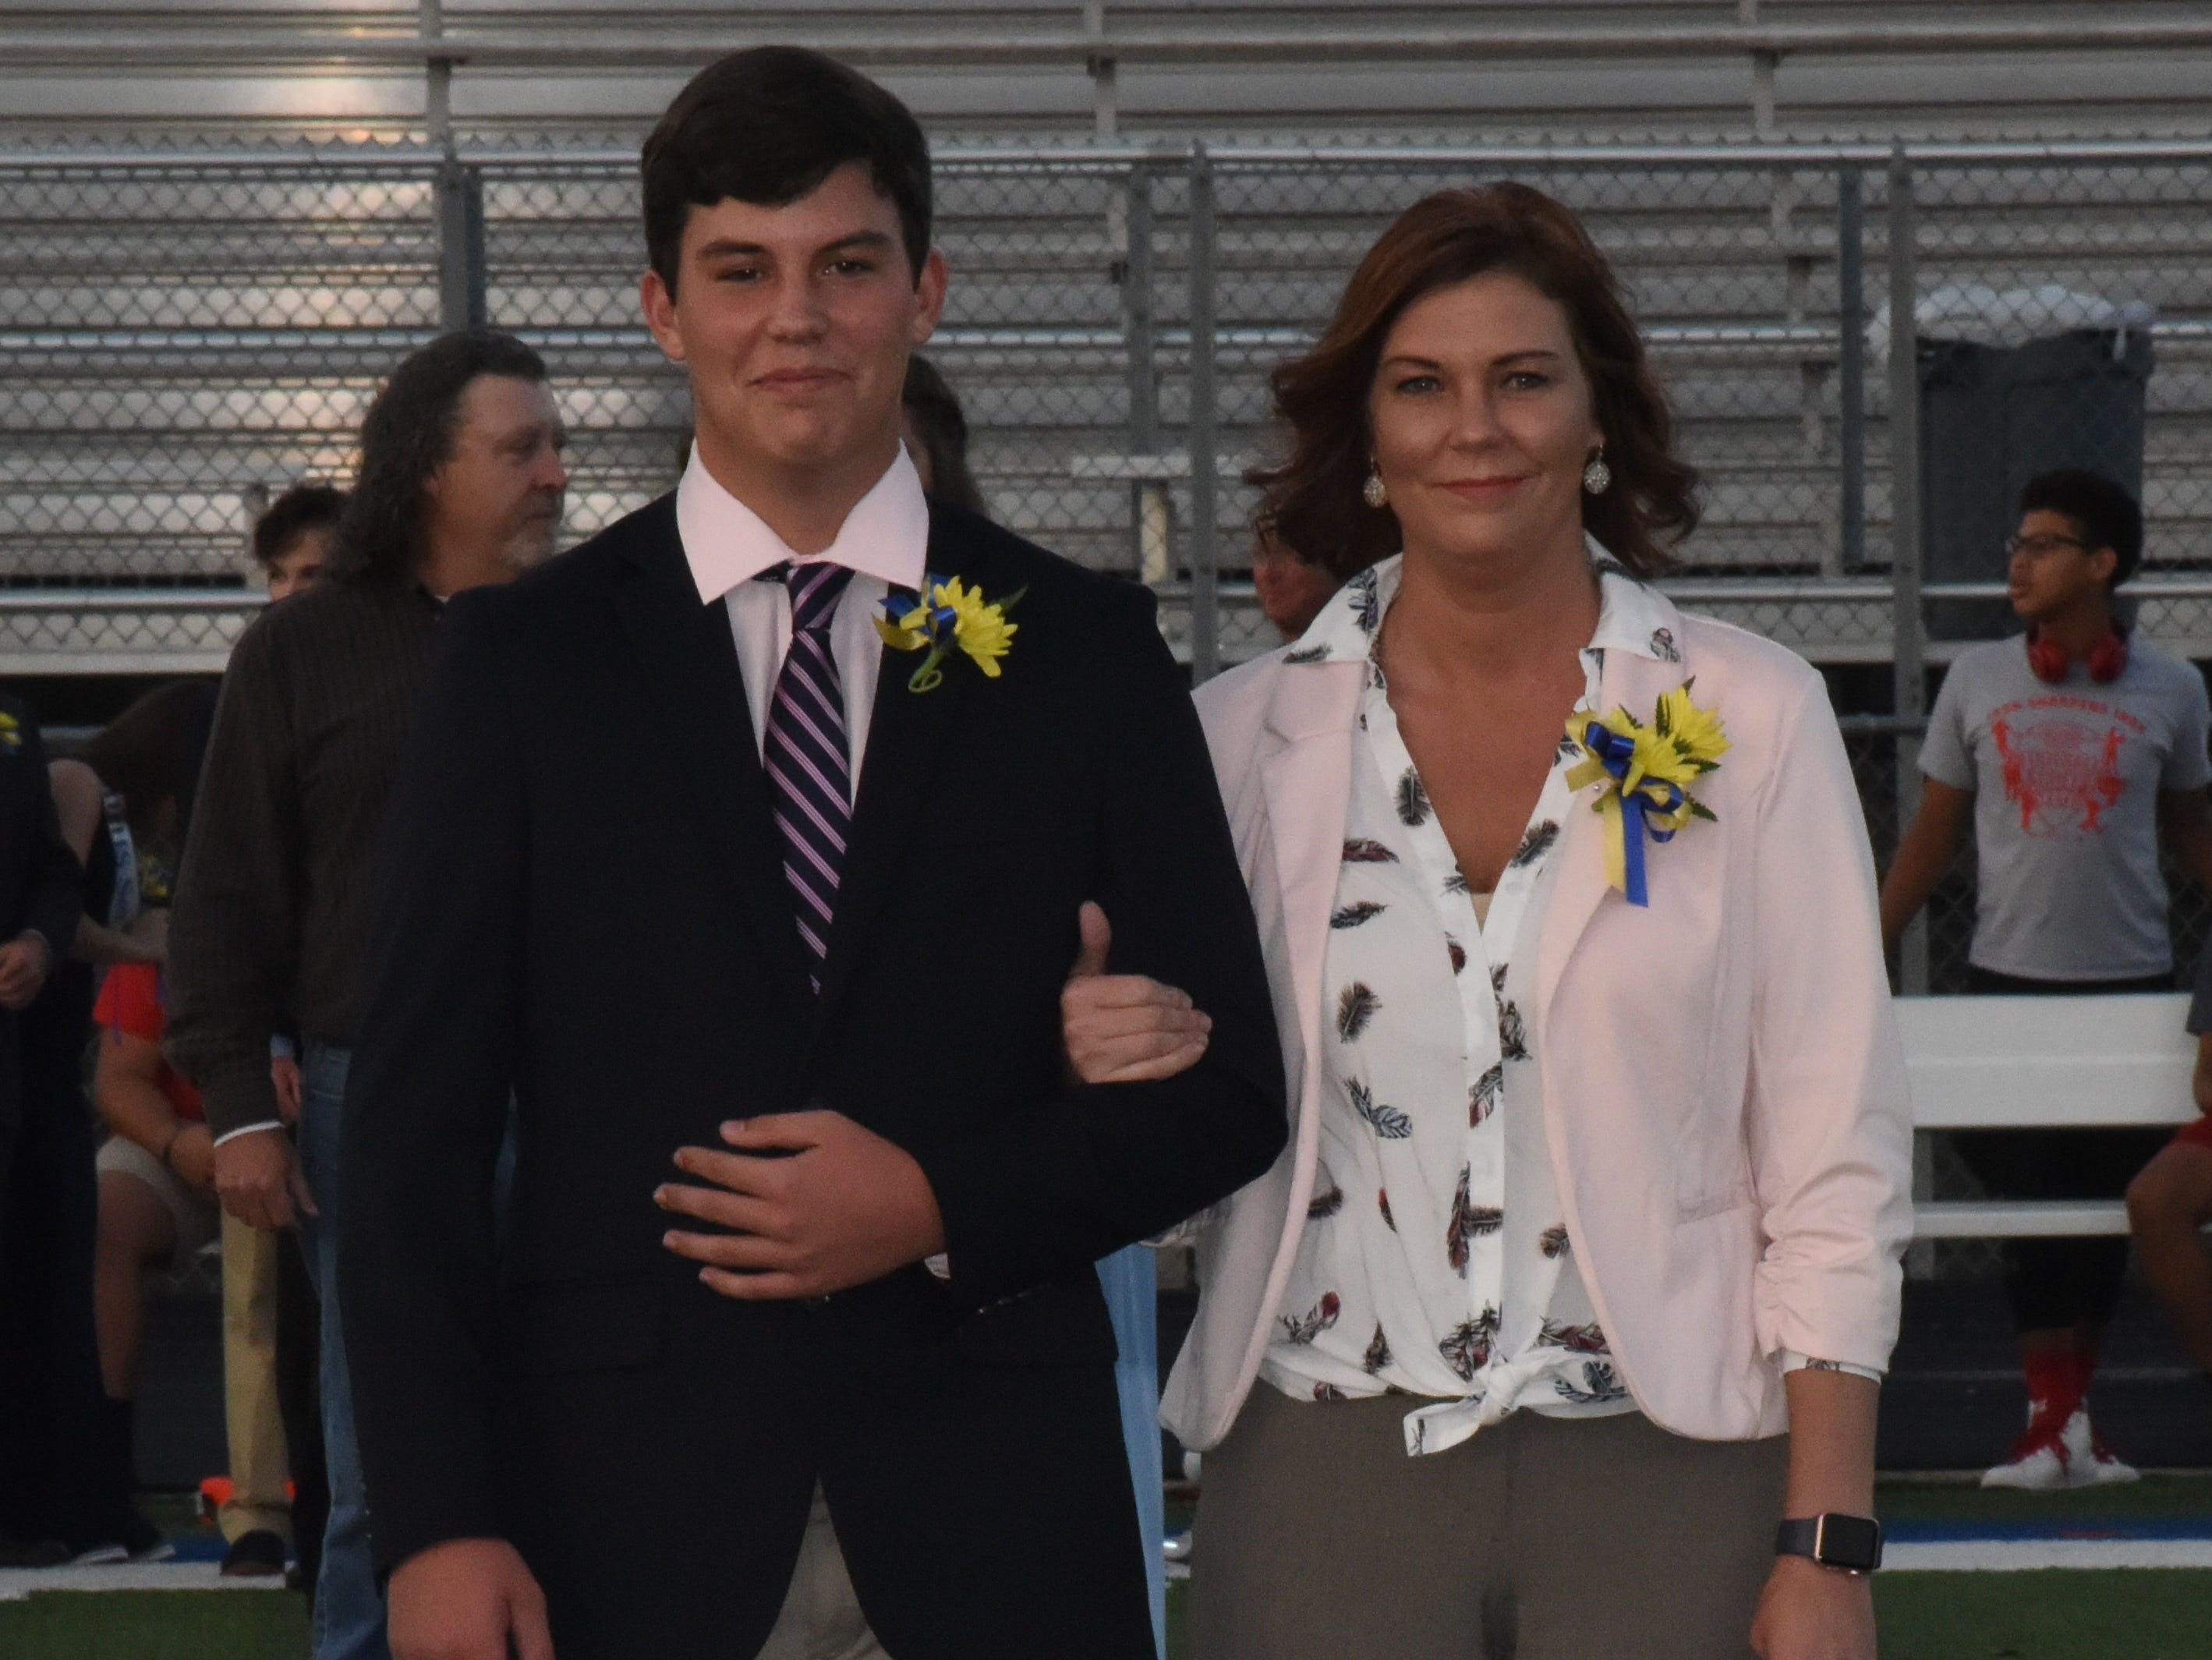 Junior knight Miles O'Brien and his mother, Carie O'Brien.